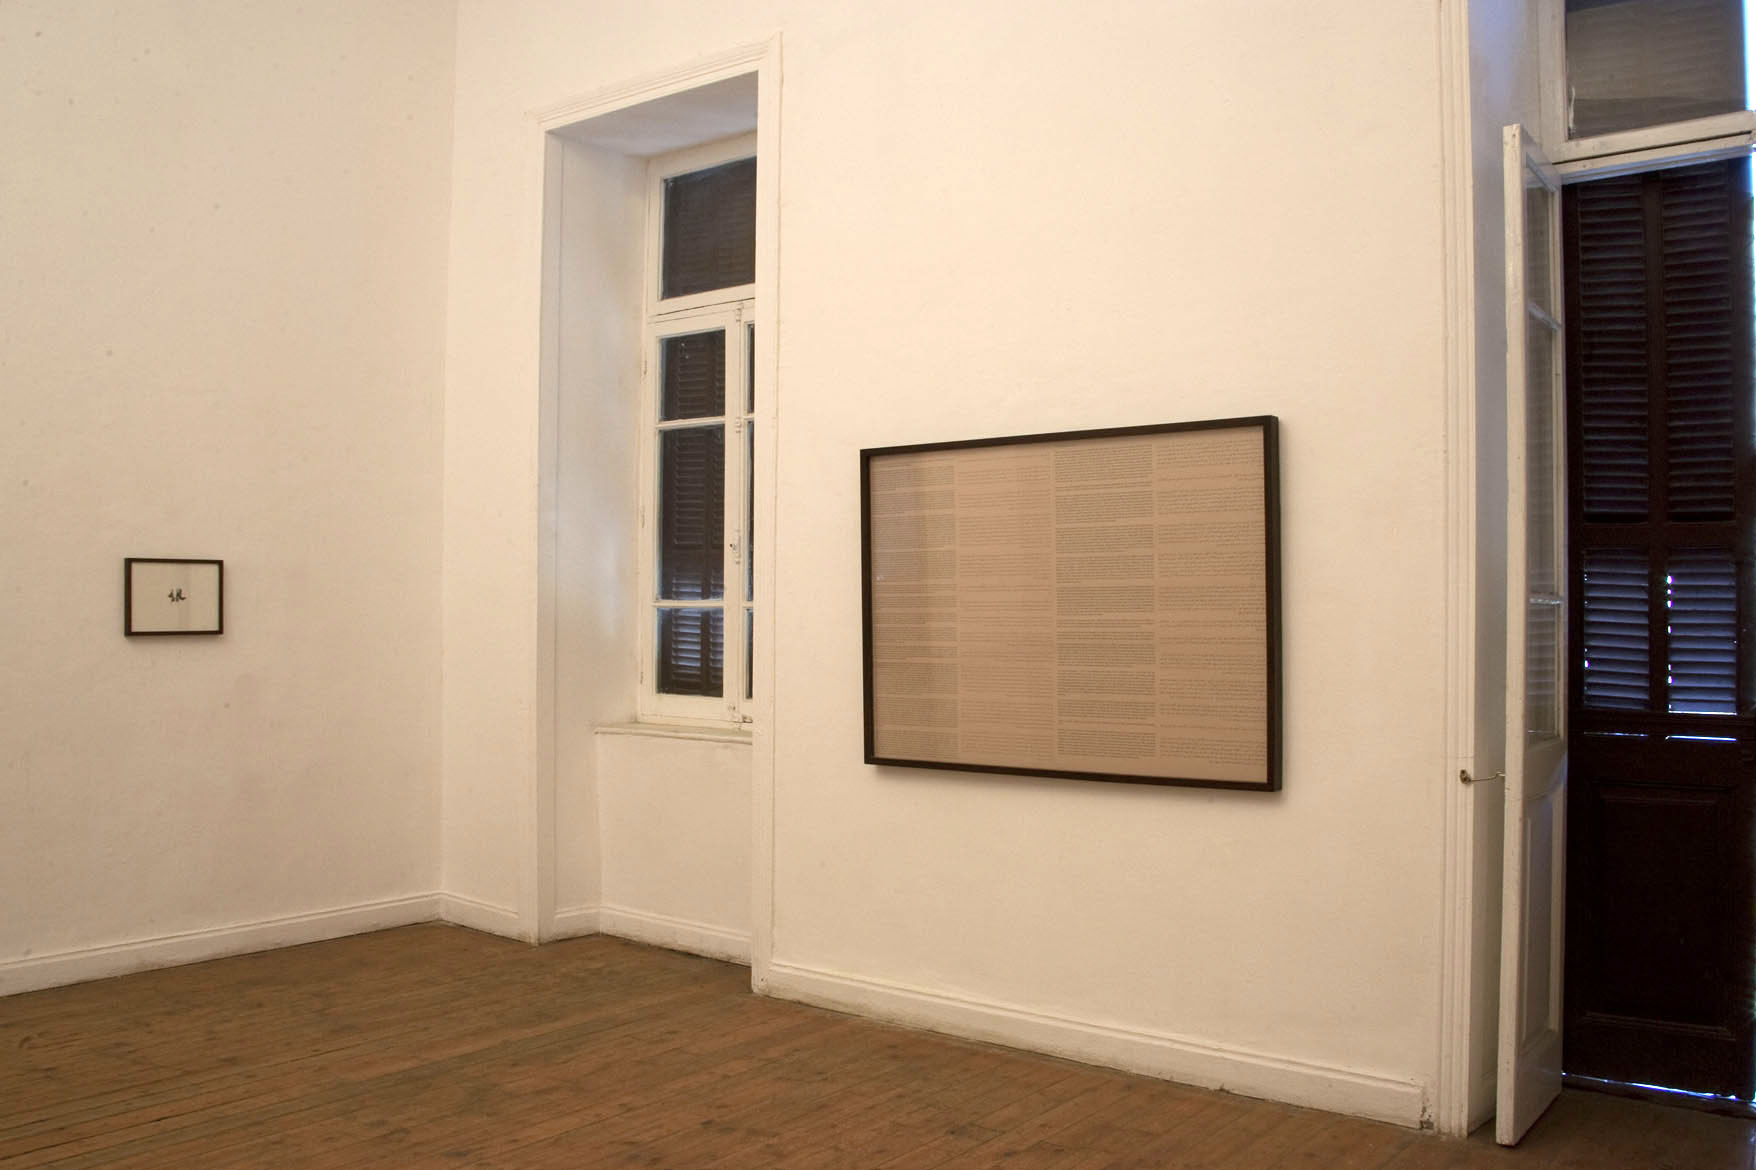 Installation shot from the exhibition Desire, Deceit, and Difficult Deliveries, Townhouse Gallery, Cairo, 2013